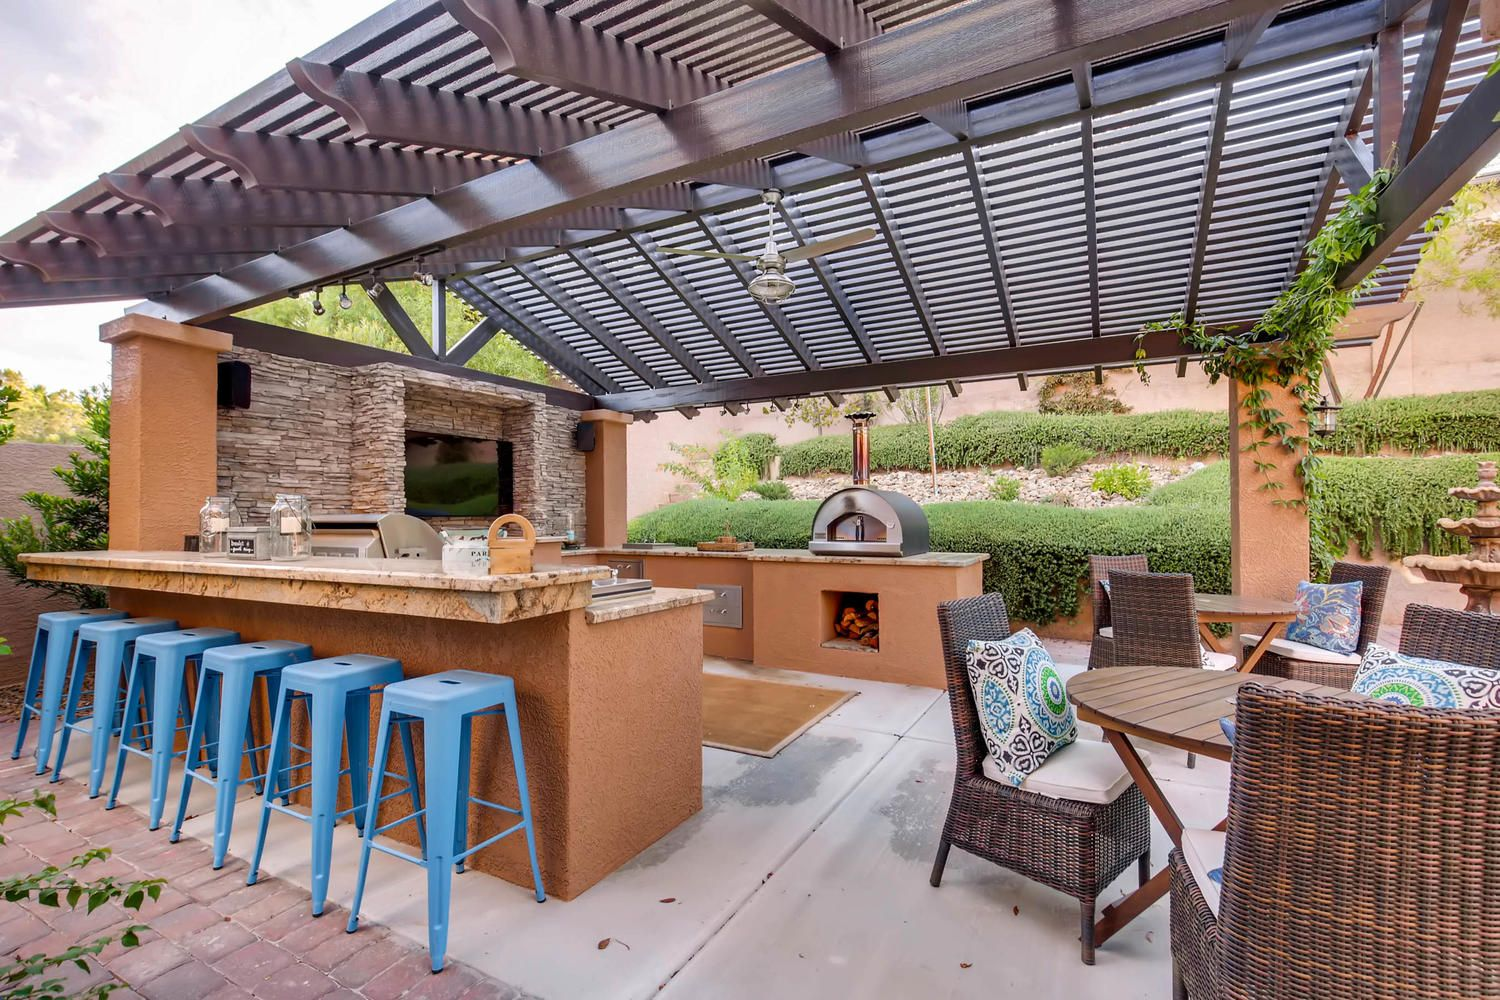 Live It Up With This Incredible Outdoor Kitchen That You Can Use Year Round In Las Vegas Backyard Outdoor Kitchen House Design